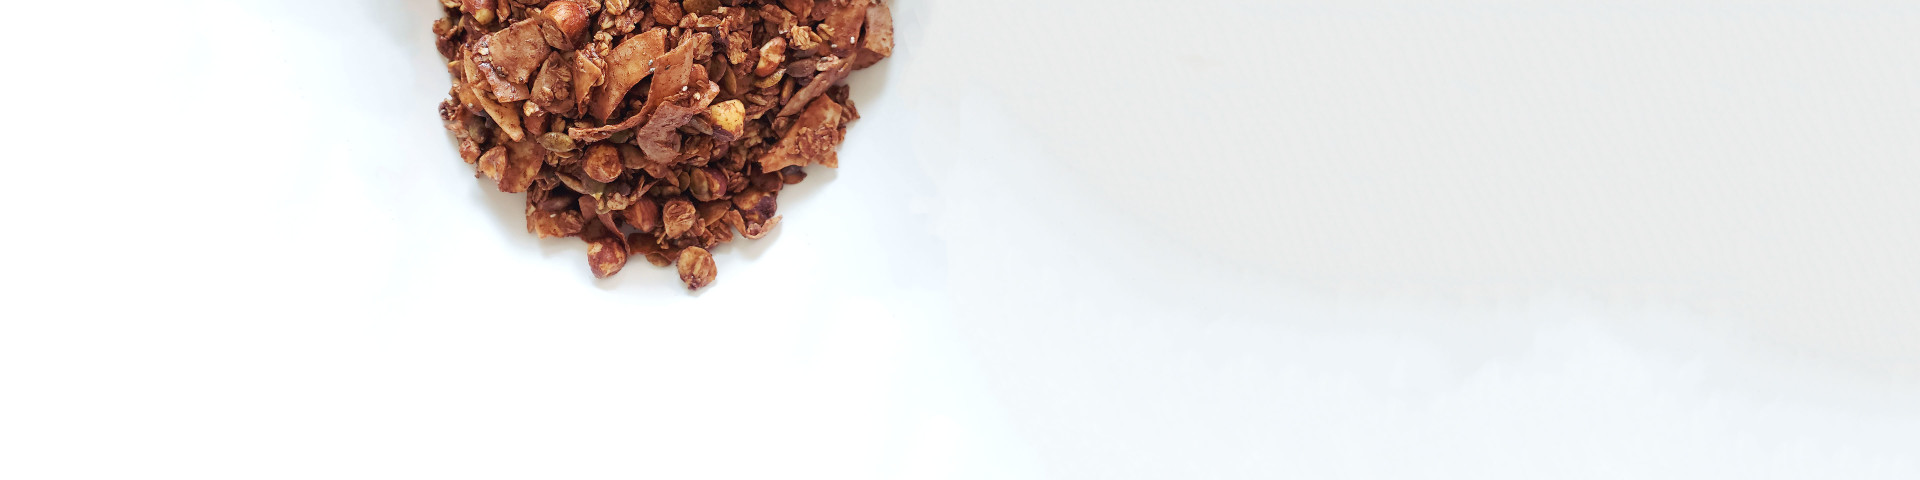 Trust us: You're going to want to try this chocolatey vegan granola recipe.